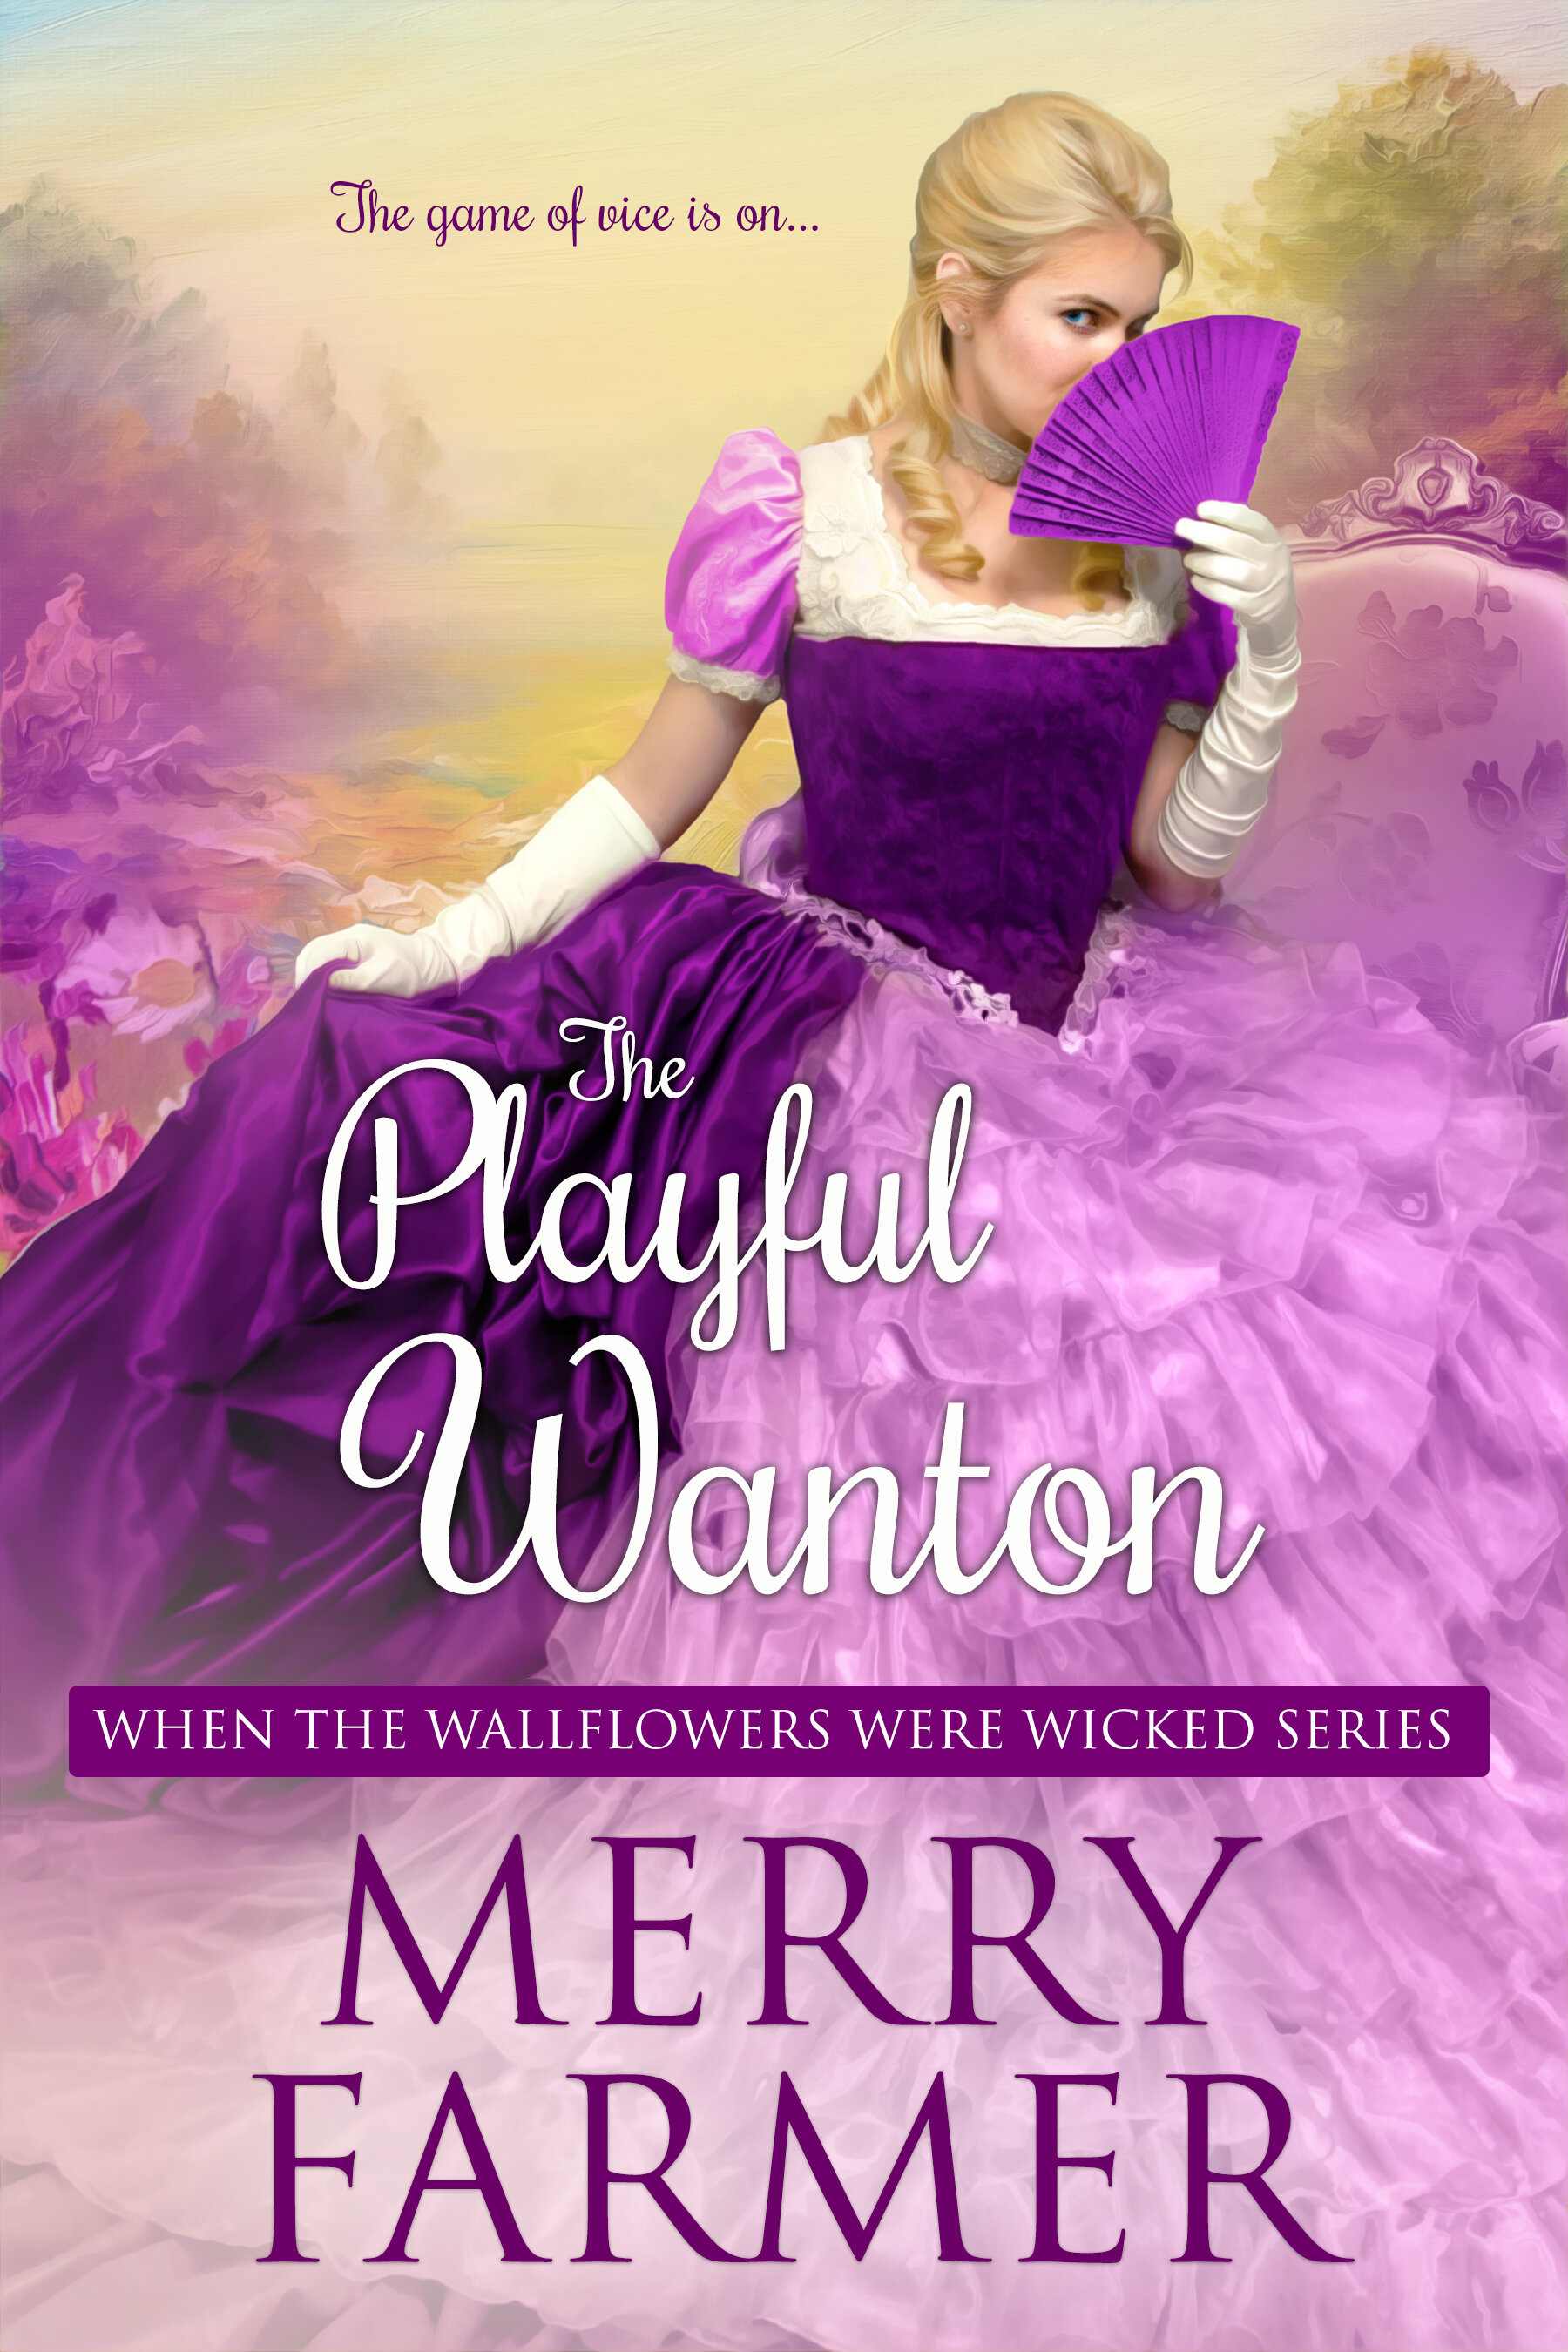 The Playful Wanton (Book Eight) - The game of vice is on….Lady Eliza Towers is as mischievous as a lady can be and more so. She has been sent to the Hadnall Heath house party to find a respectable husband, but she has other plans. Plans in the form of seducing handsome, stoic Bow Street Runner, Mr. Adolphus Gibbon. When the house party guests are invited to participate in a scandalous treasure hunt, she sees her perfect opportunity.Adolphus Gibbon has come to the house party for one reason only—to bring one of the guests who has committed a crime to justice. NOT to enjoy himself. But he cannot resist the sinful allure of Lady Eliza. When business and pleasure collide as he discovers the man he is hunting has a painful connection to Eliza, his manhunt becomes a personal vendetta. And when the star witness disappears, he and Eliza find themselves searching for more than they bargained for.A light-hearted, fun, SUPER steamy, Regency romp—a quick read, not to be taken too seriously.PLEASE BE ADVISED – Steam Level: Five-Alarm Fire with a few F-bombs. Don't say you weren't warned.